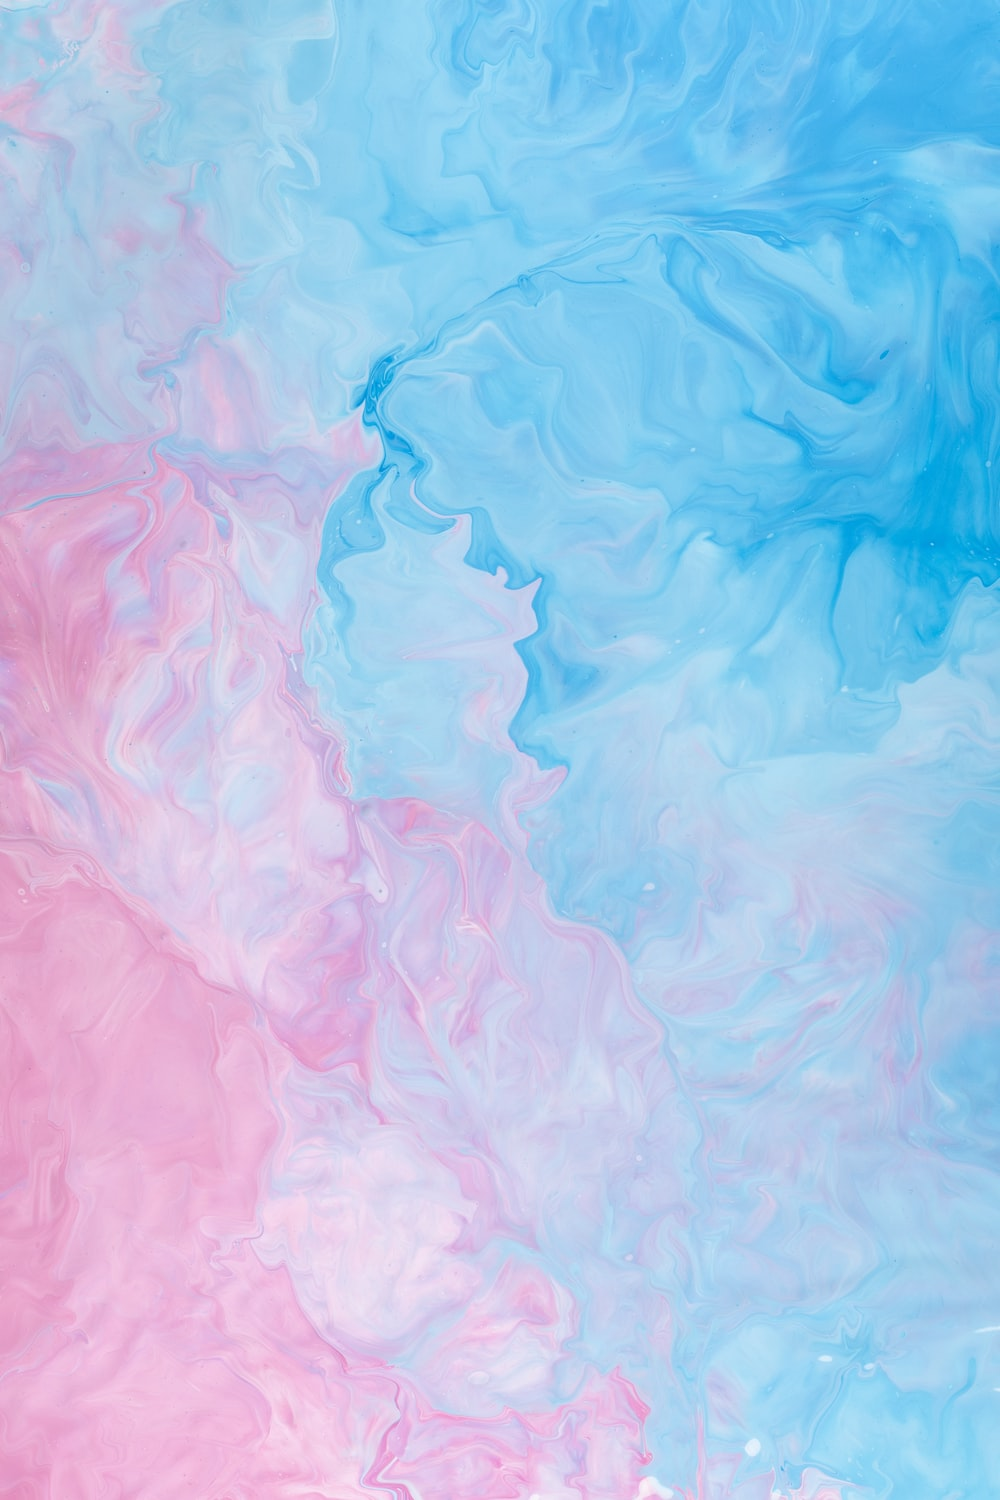 Pastel Wallpapers Free Hd Download 500 Hq Unsplash Find & download free graphic resources for abstrak. pastel wallpapers free hd download